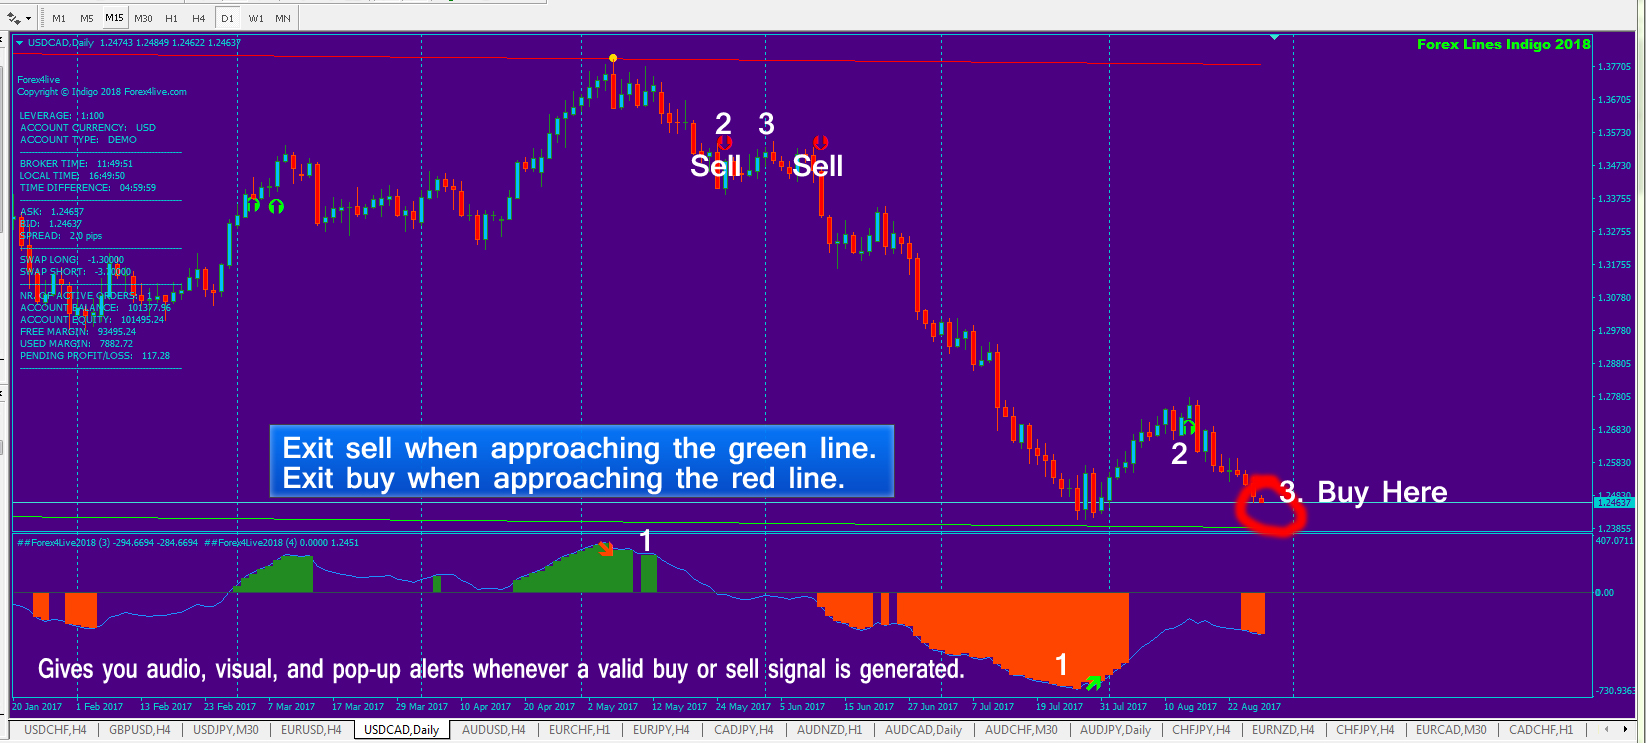 20+ Best Forex Signals Providers In By Success Rate!